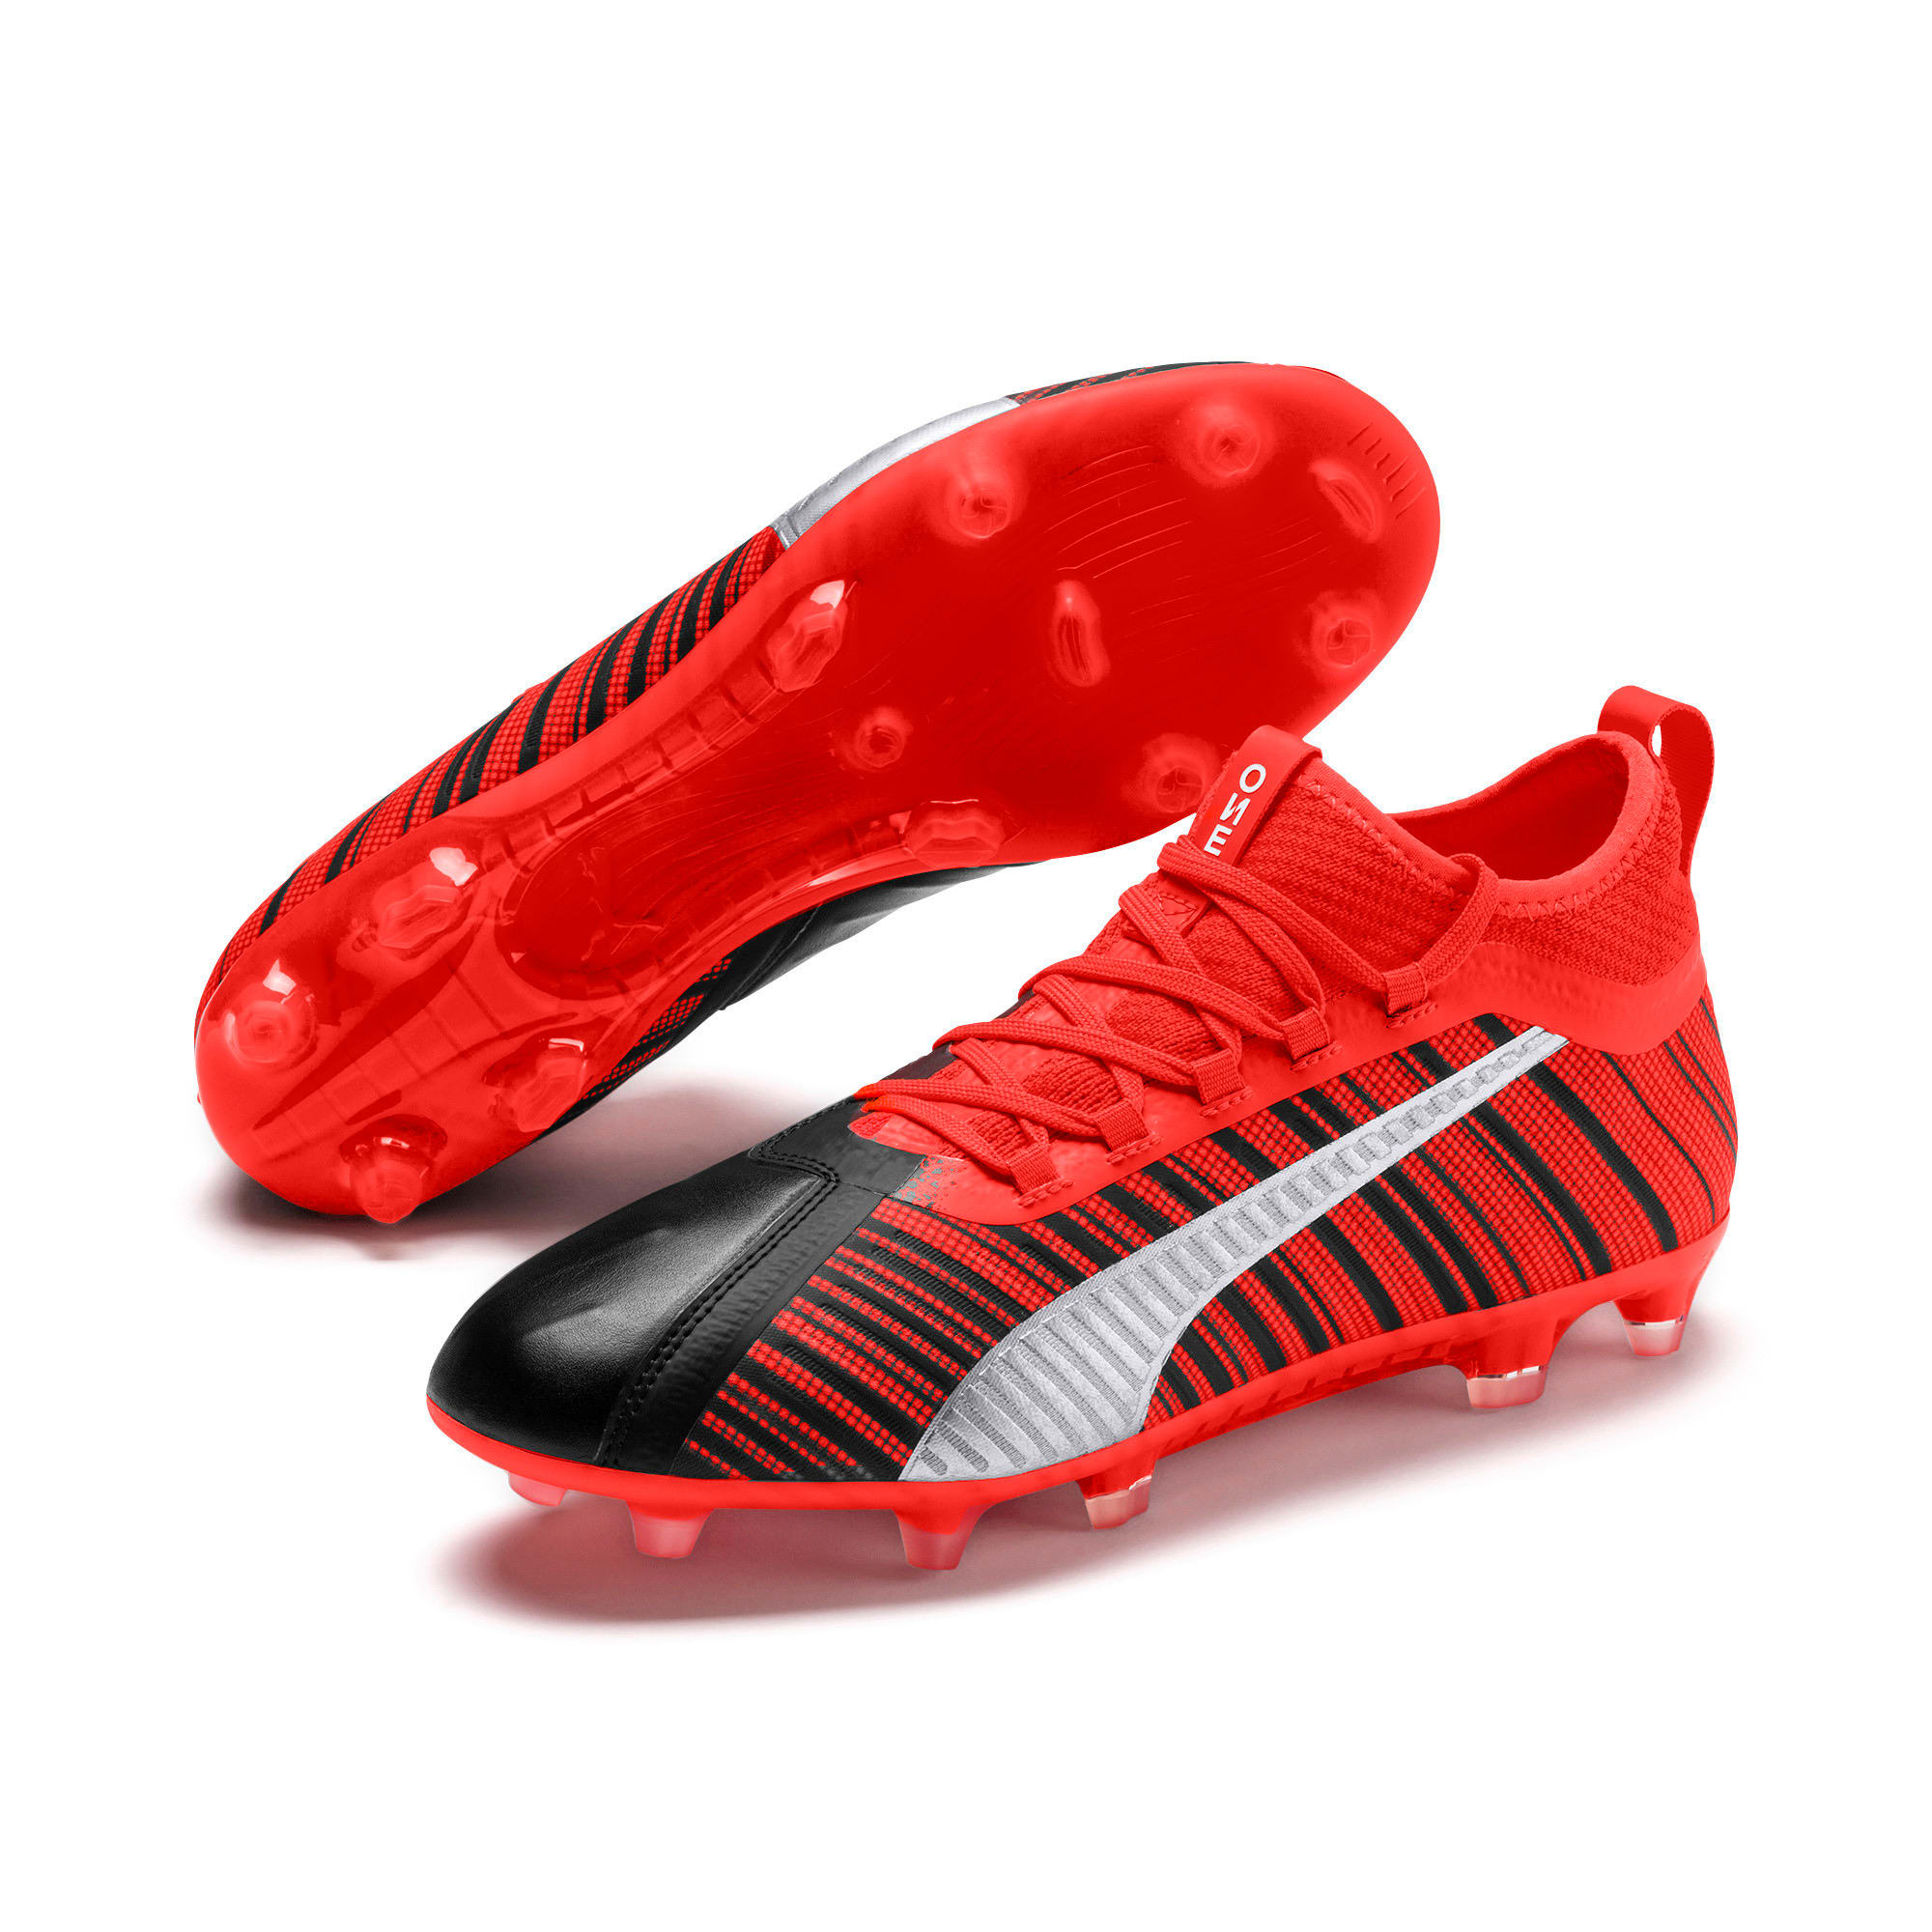 Thumbnail 3 of PUMA ONE 5.2 Men's Football Boots, Black-Nrgy Red-Aged Silver, medium